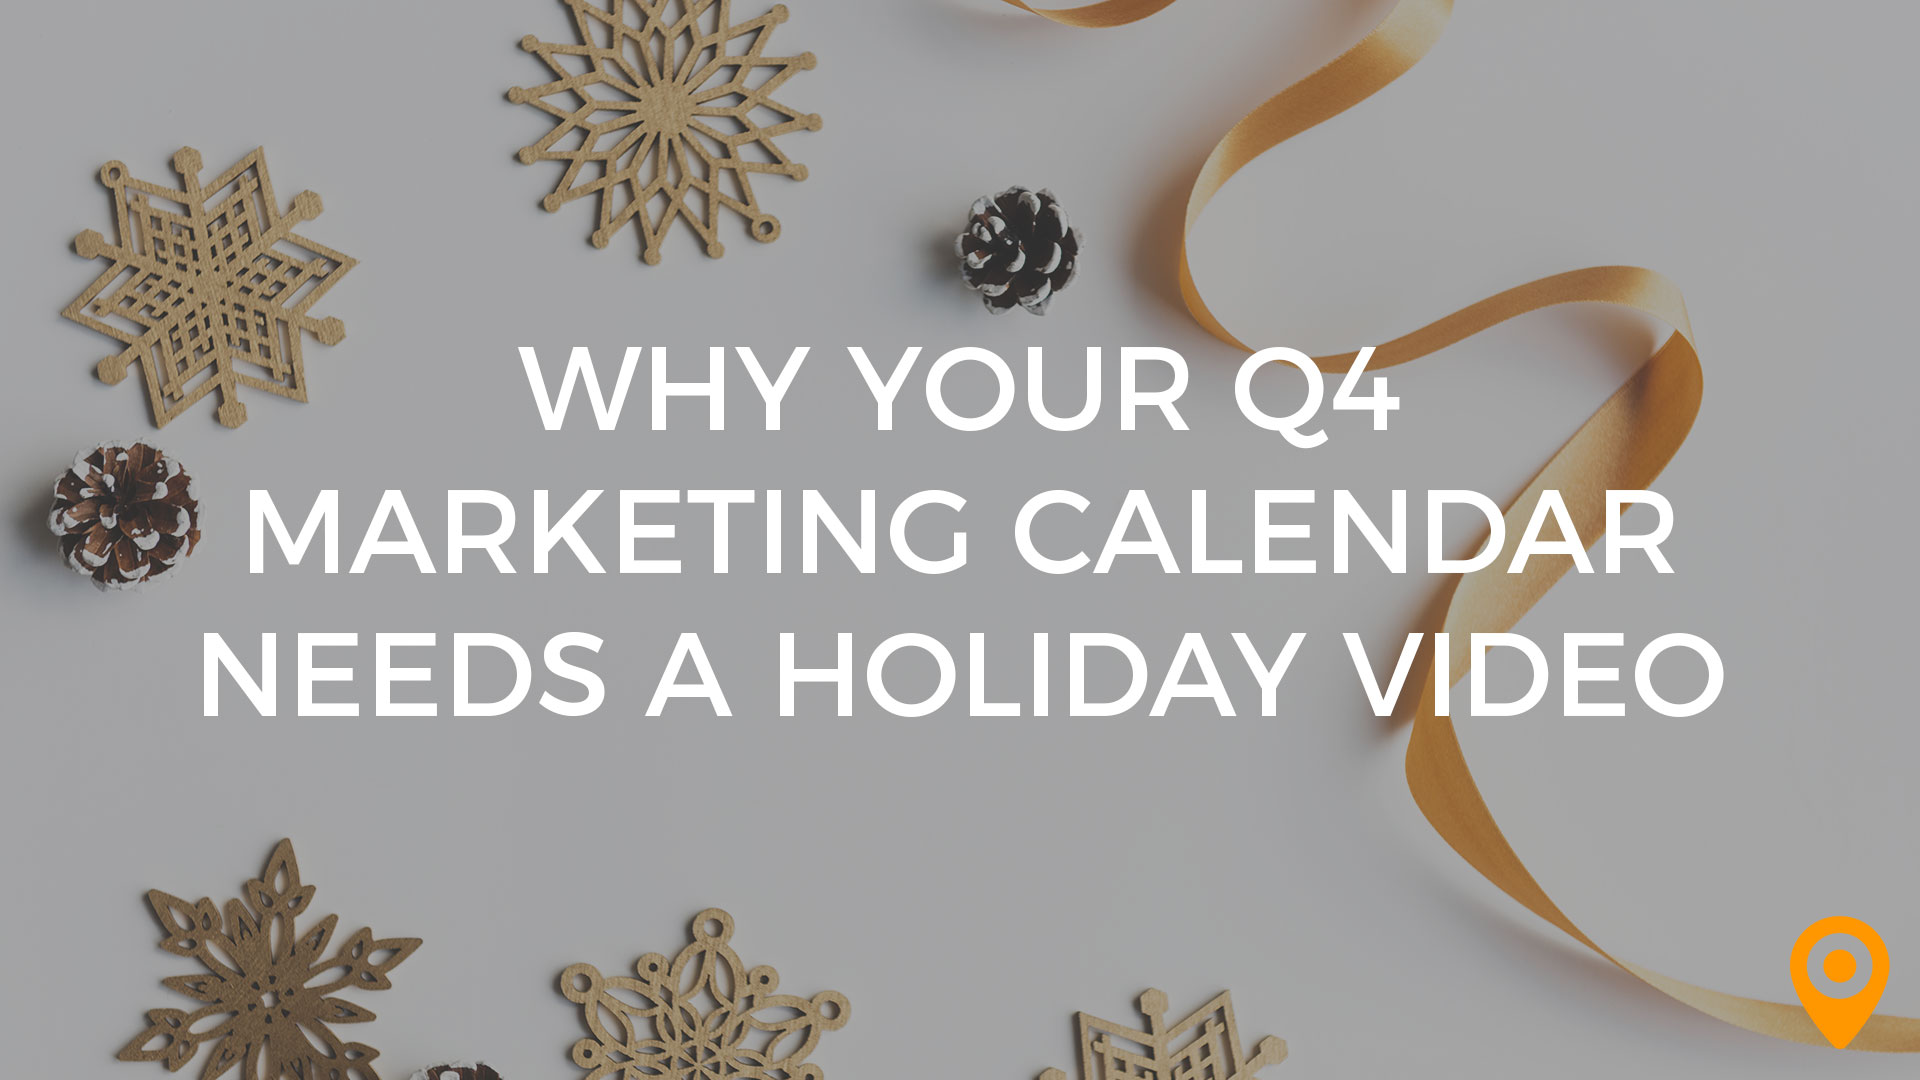 Why Your Q4 Marketing Calendar Needs a Holiday Video